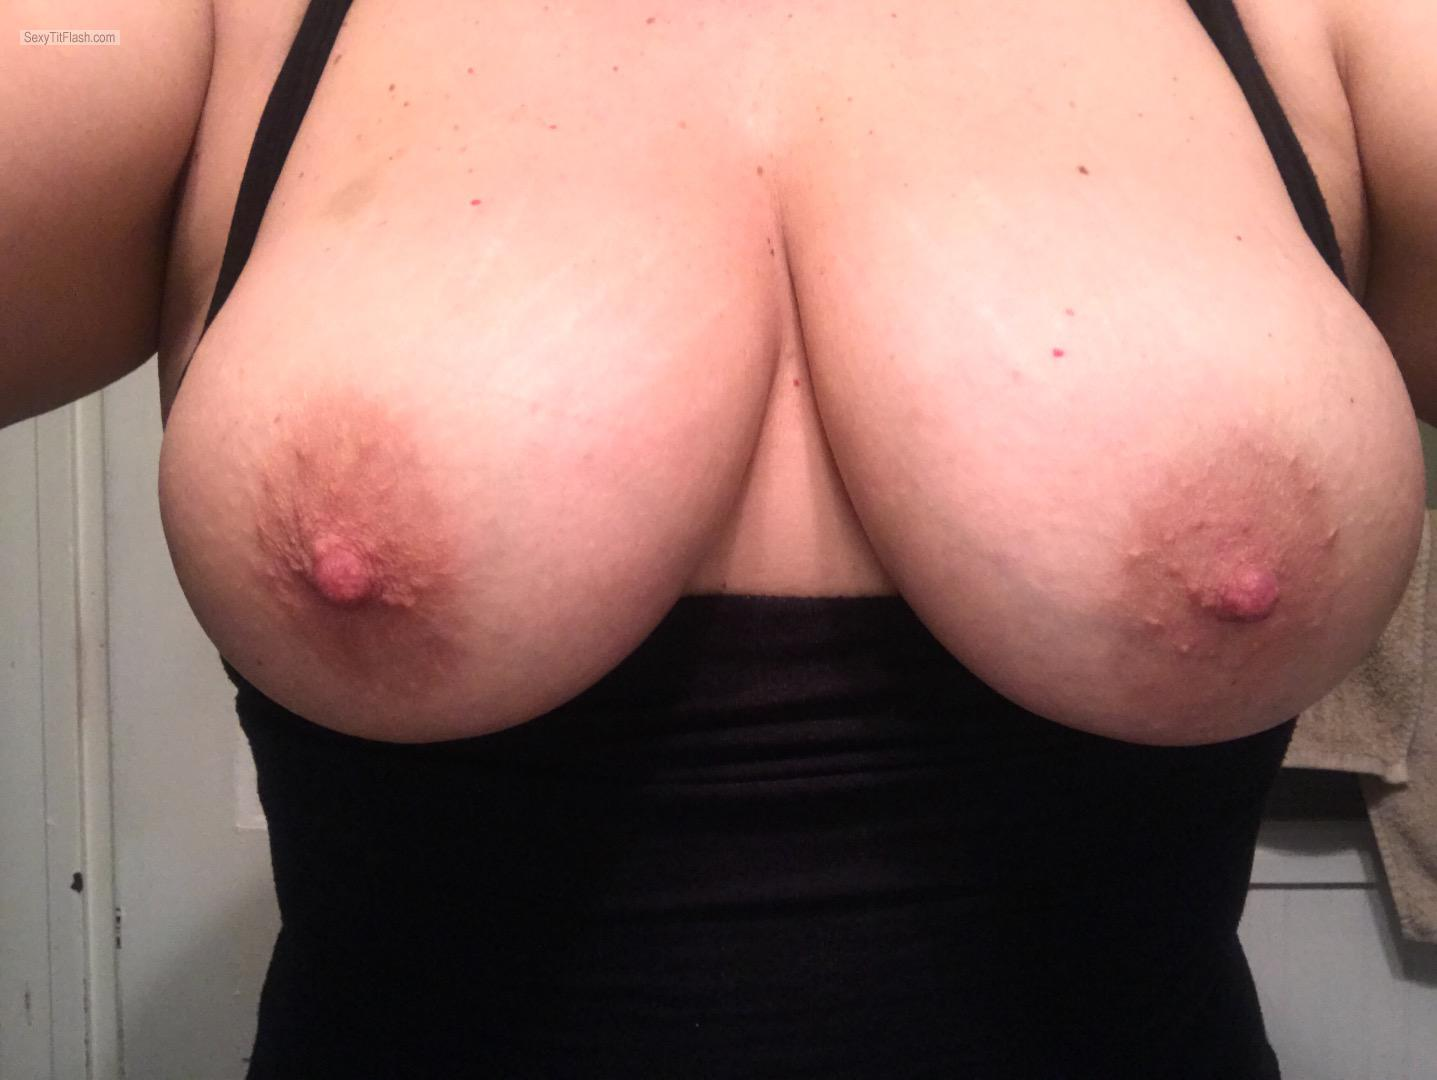 Tit Flash: My Big Tits (Selfie) - Does It Really Matter from United States